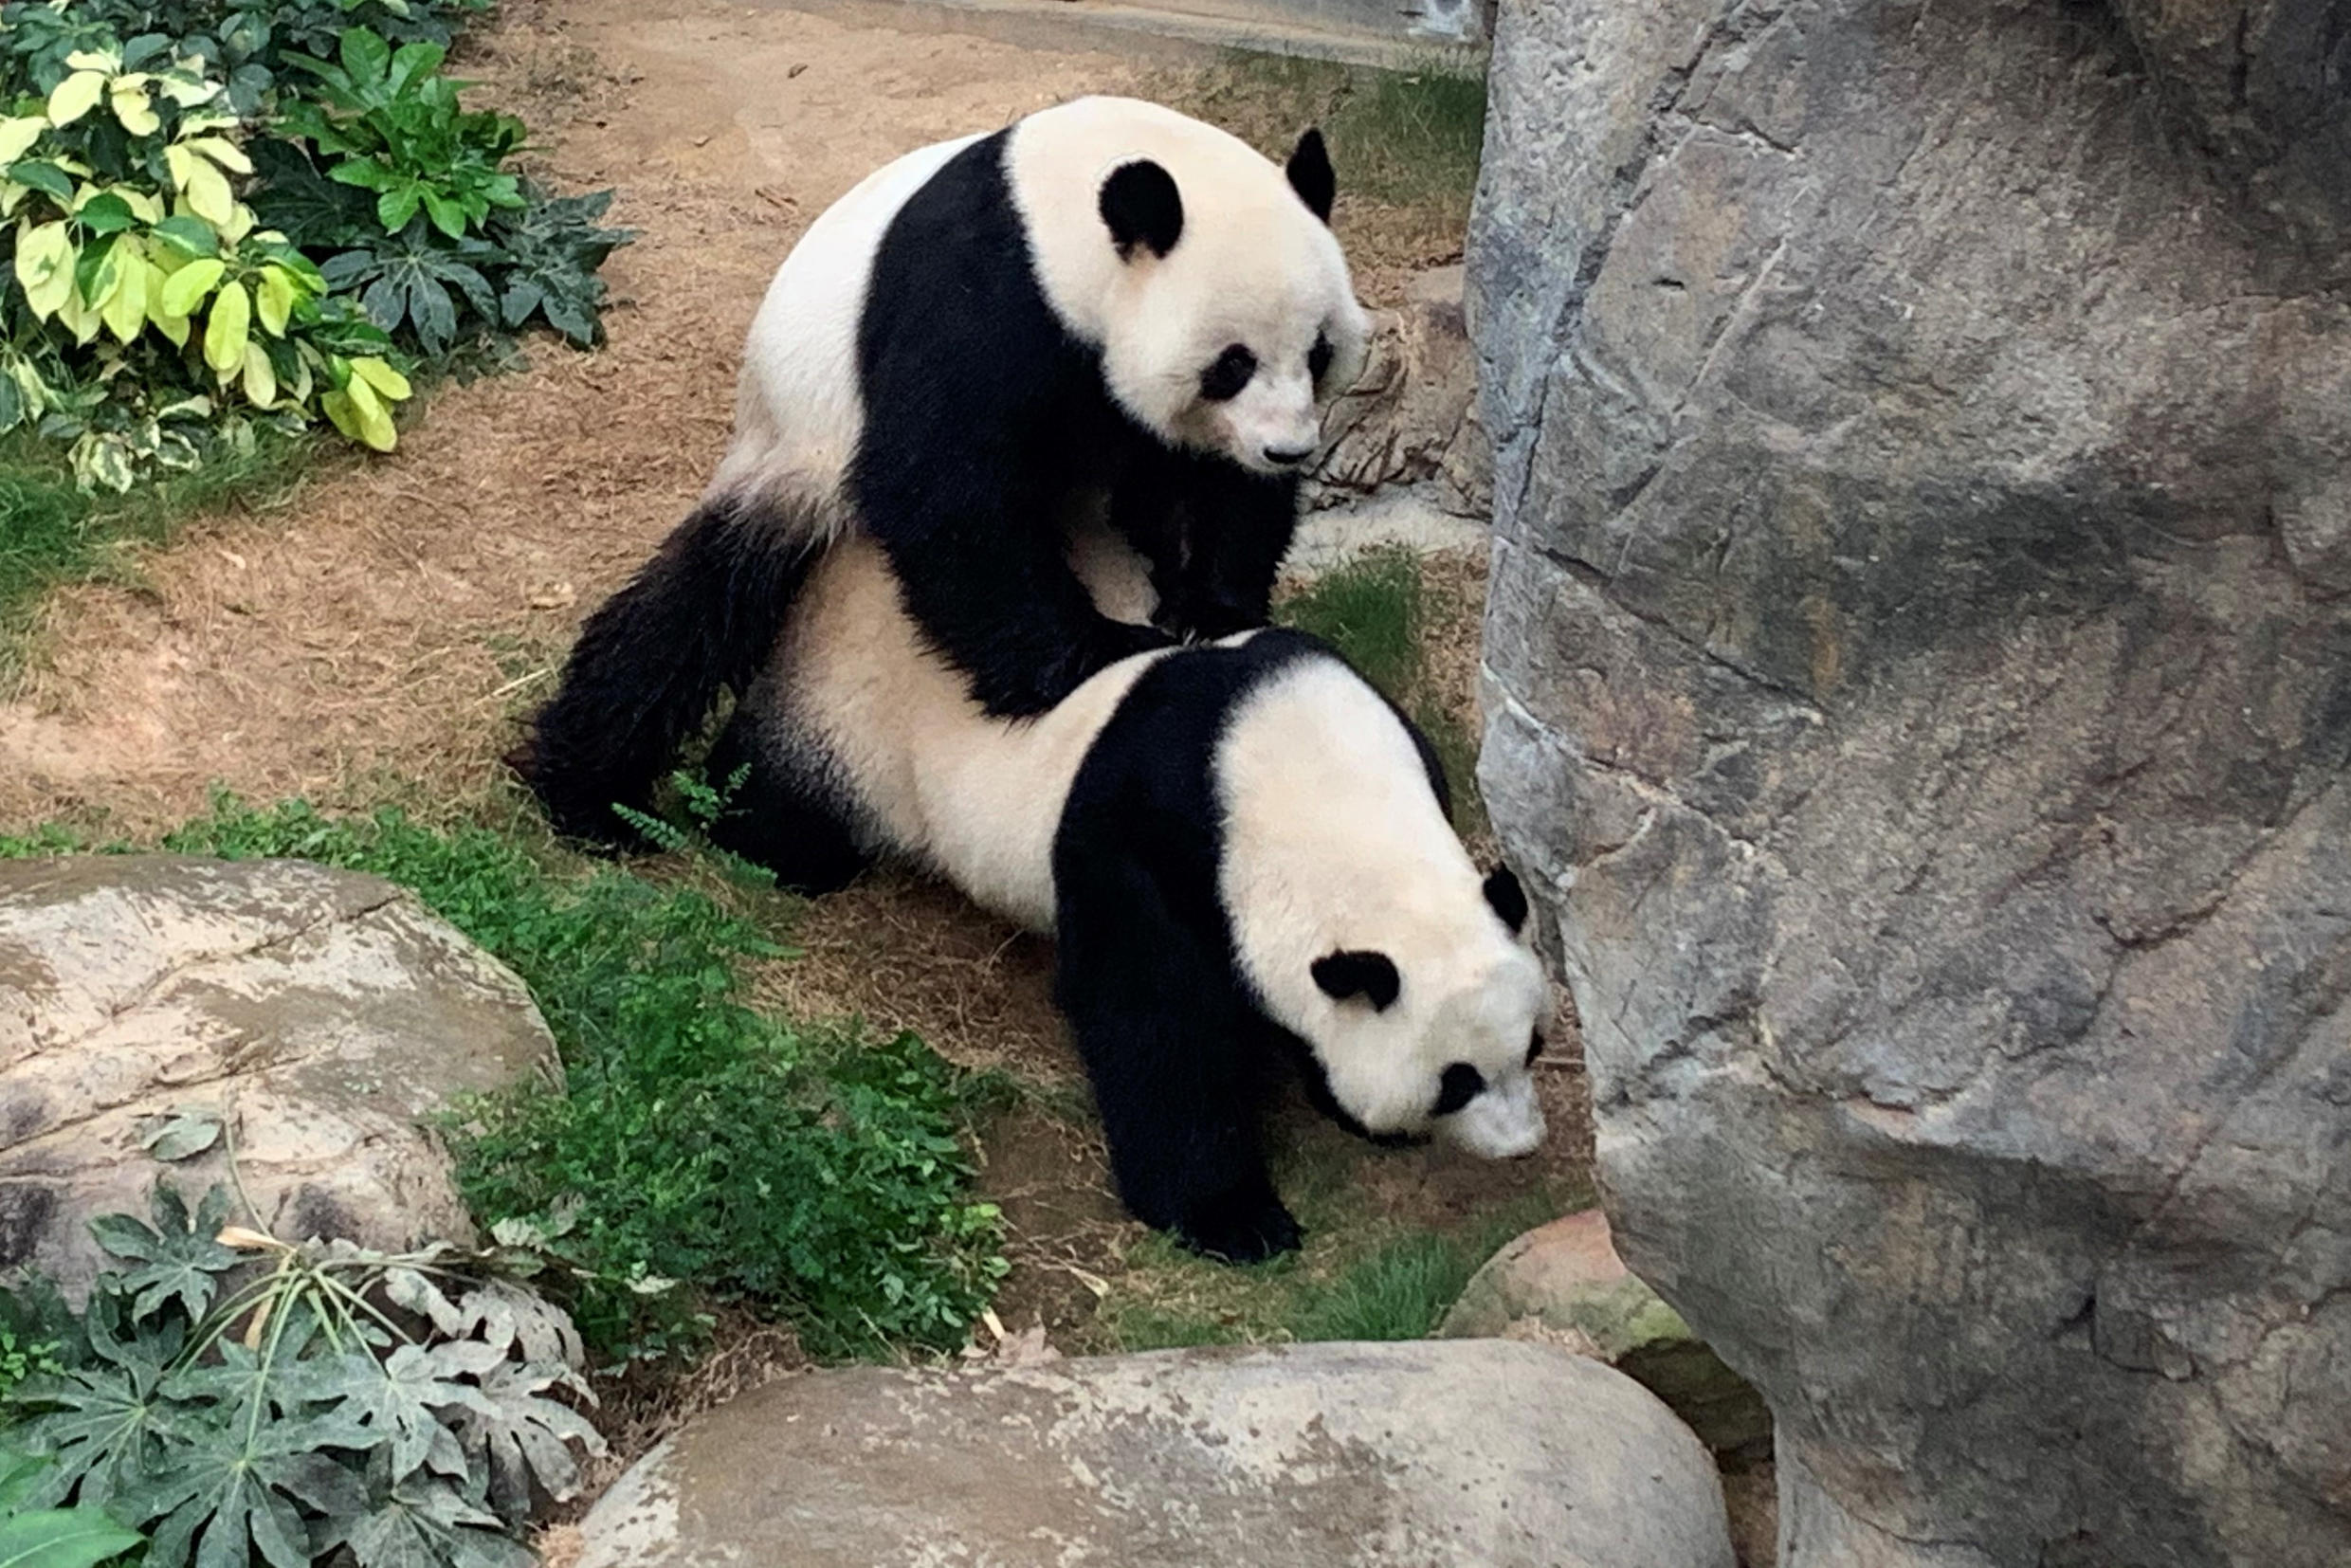 Ying Ying and Le Le, giant pandas at Ocean Park in Hong-Kong, mated naturally for the first time in a decade of trying, two months after the theme park closed its doors to the public over coronavirus.